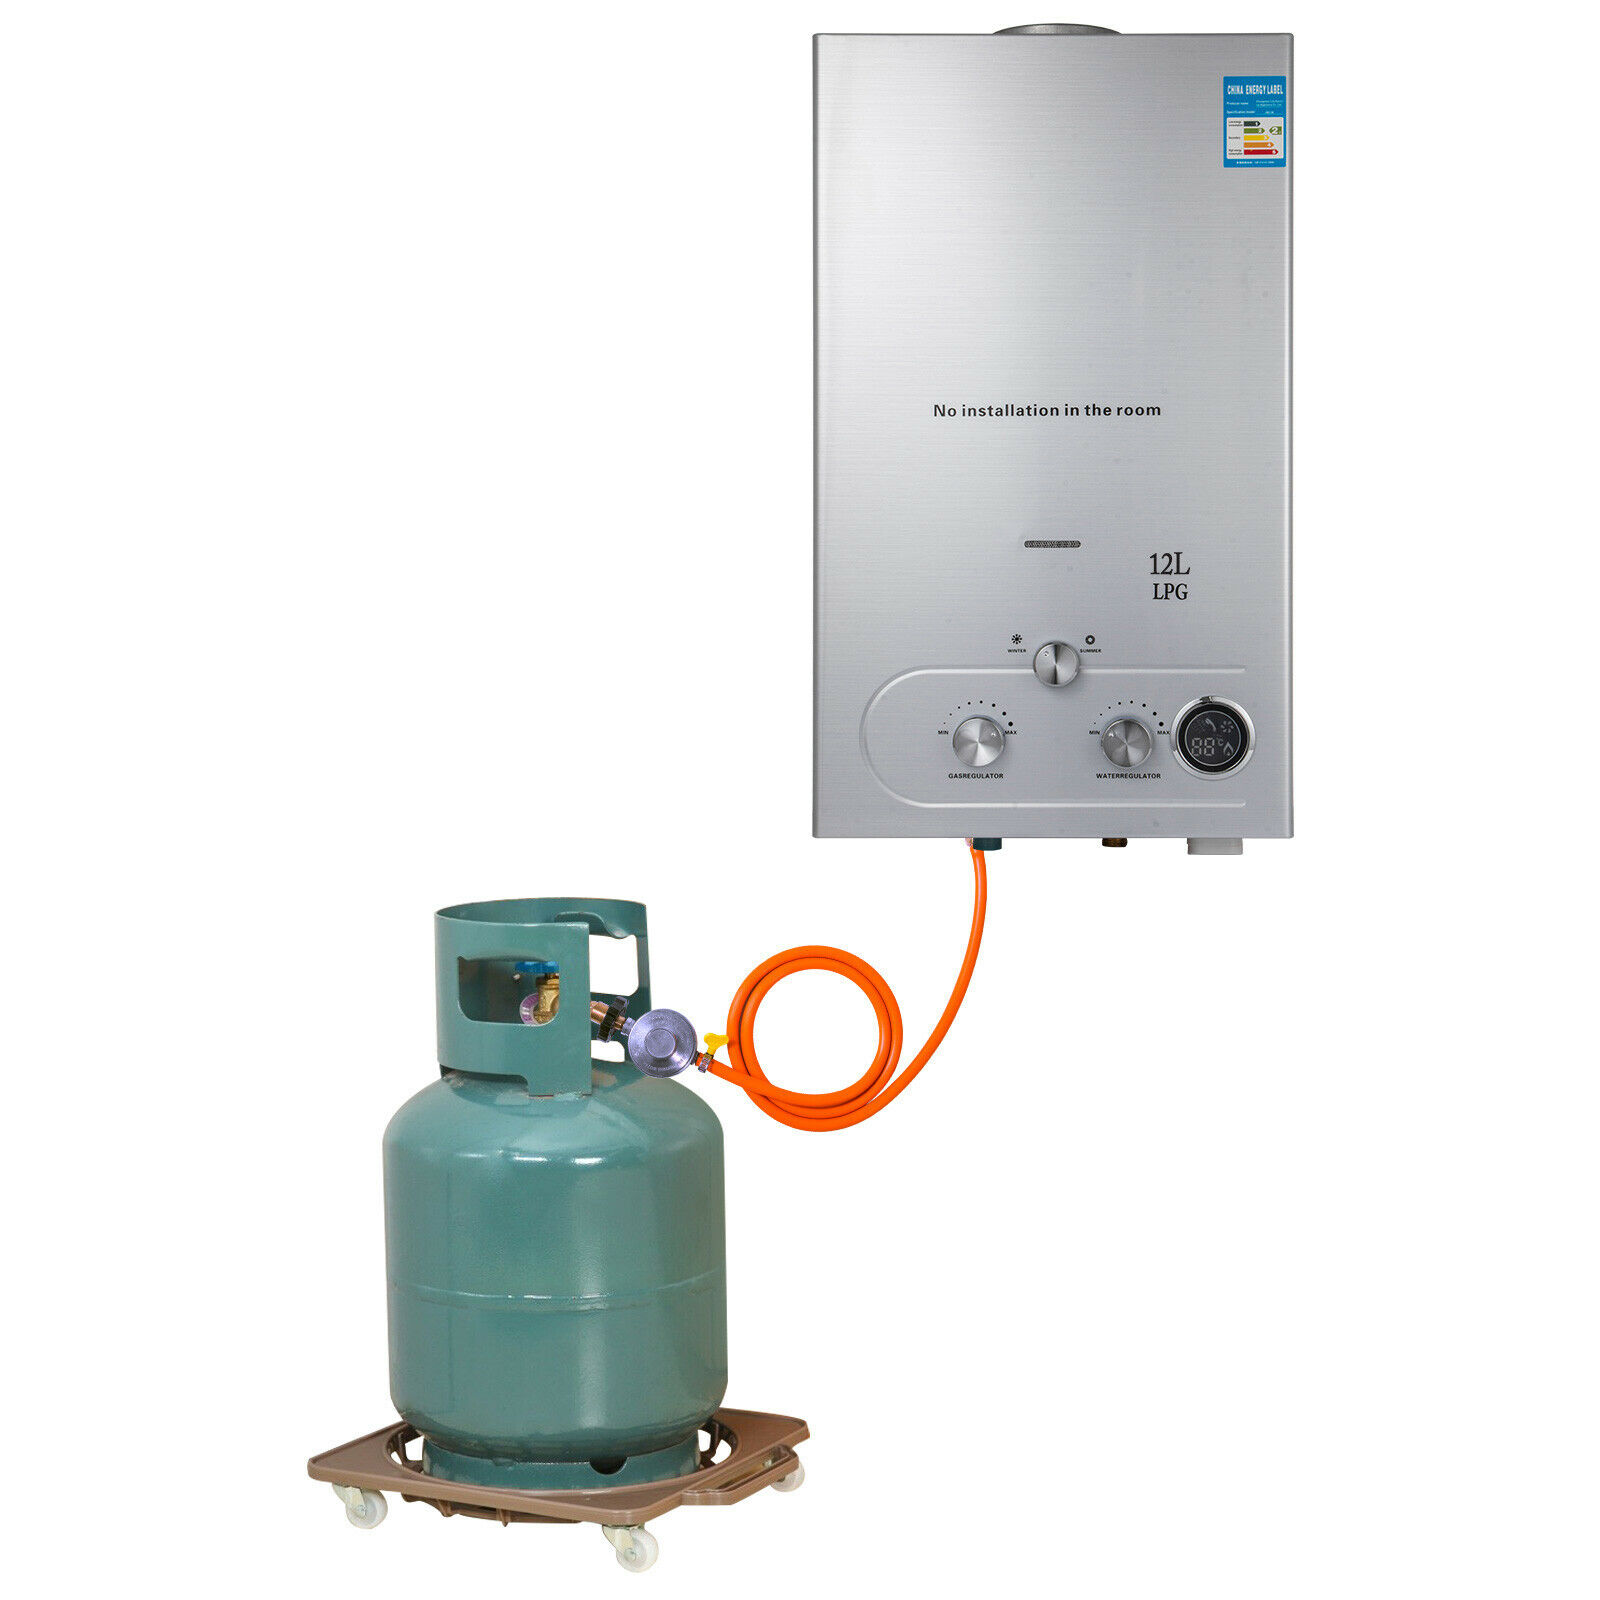 12L LPG Gas Water Heater Domestic Instant Tankless Propane Tankless Gas Water Heater